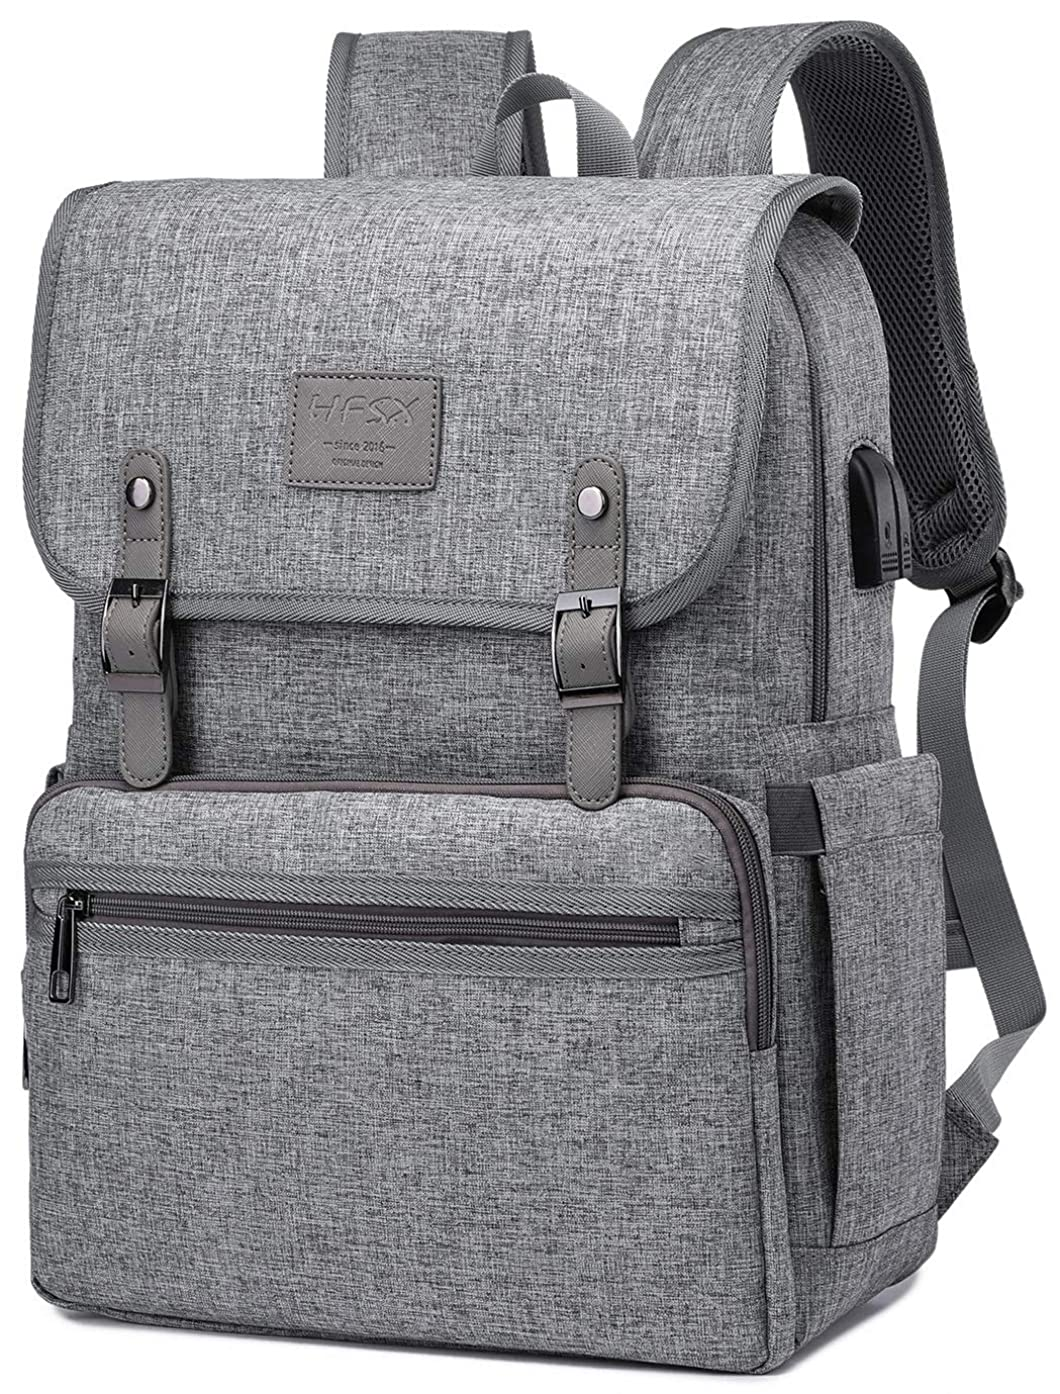 Anti Theft Laptop Backpack Men Women Business Travel Computer Backpack School College Bookbag Stylish Water Resistant Vintage Backpack with USB Port Fashion Grey Fits 15.6 Inch Laptop Grey